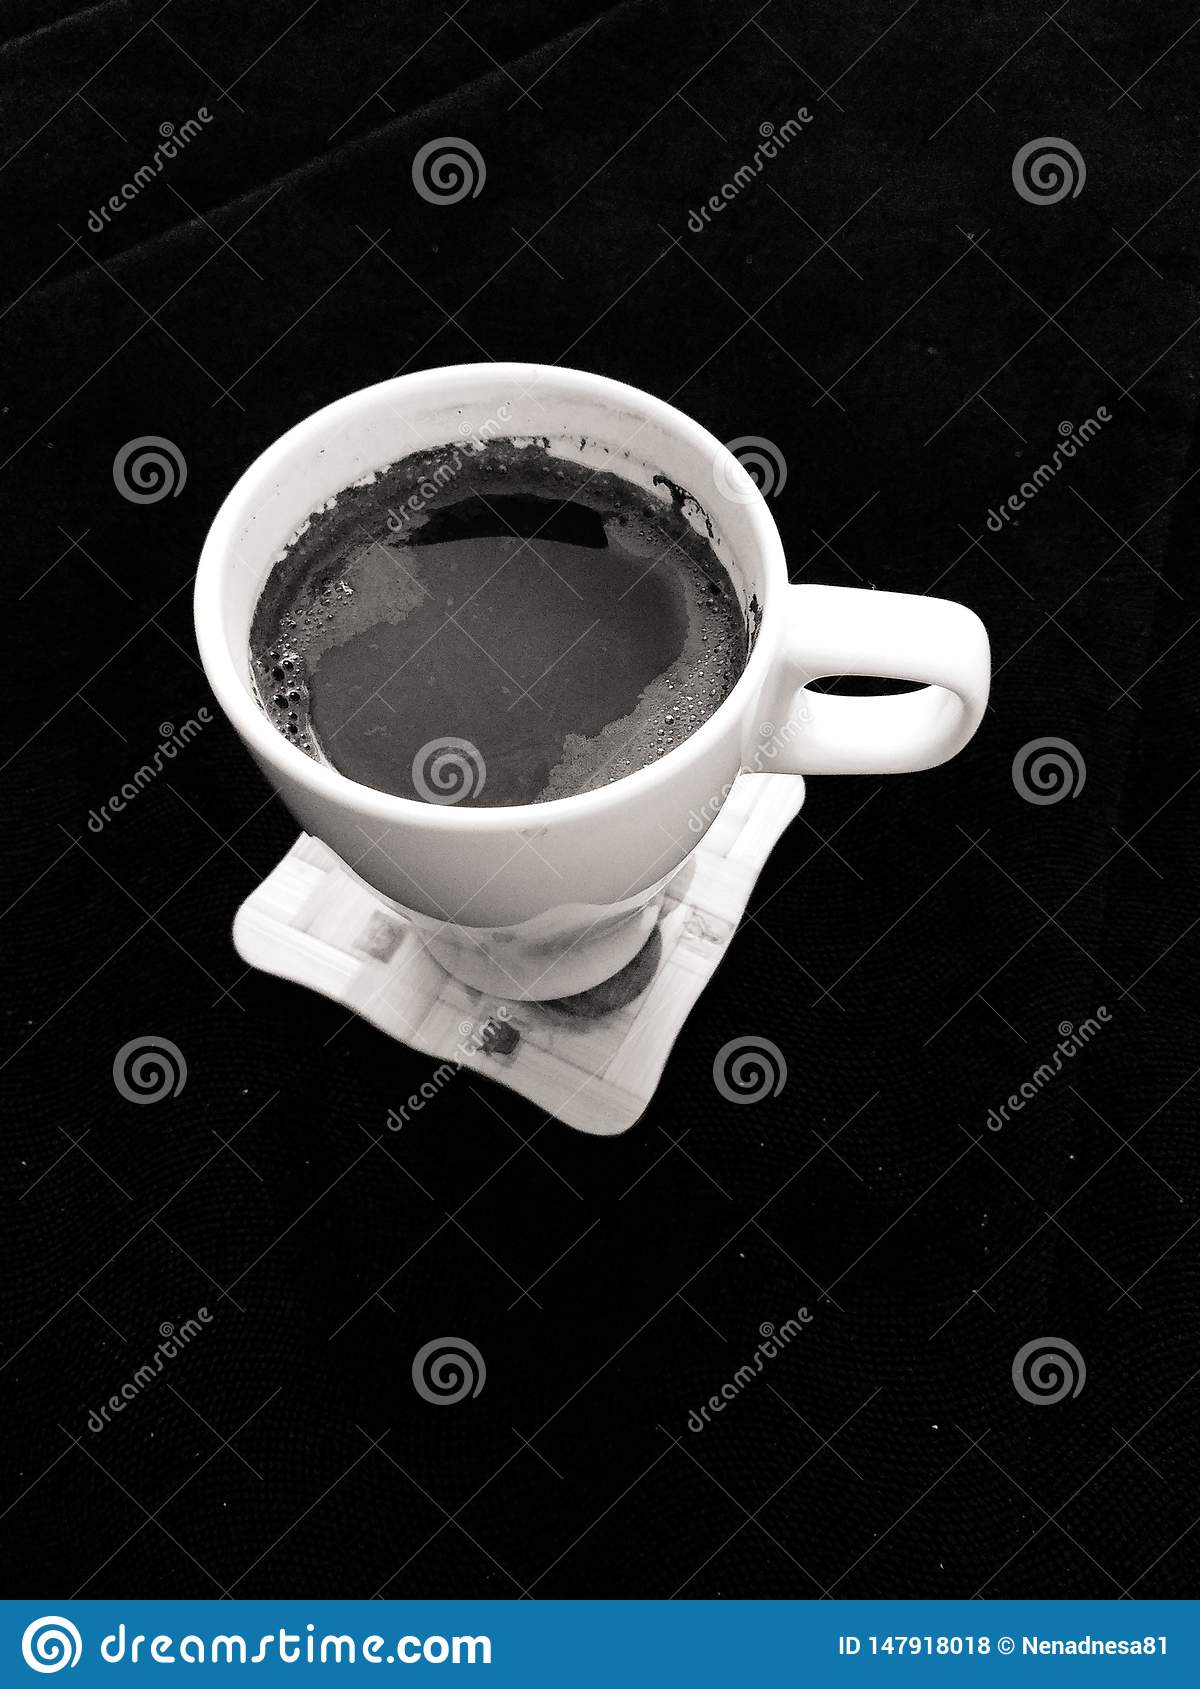 141 Serbian Coffee Photos Free Royalty Free Stock Photos From Dreamstime